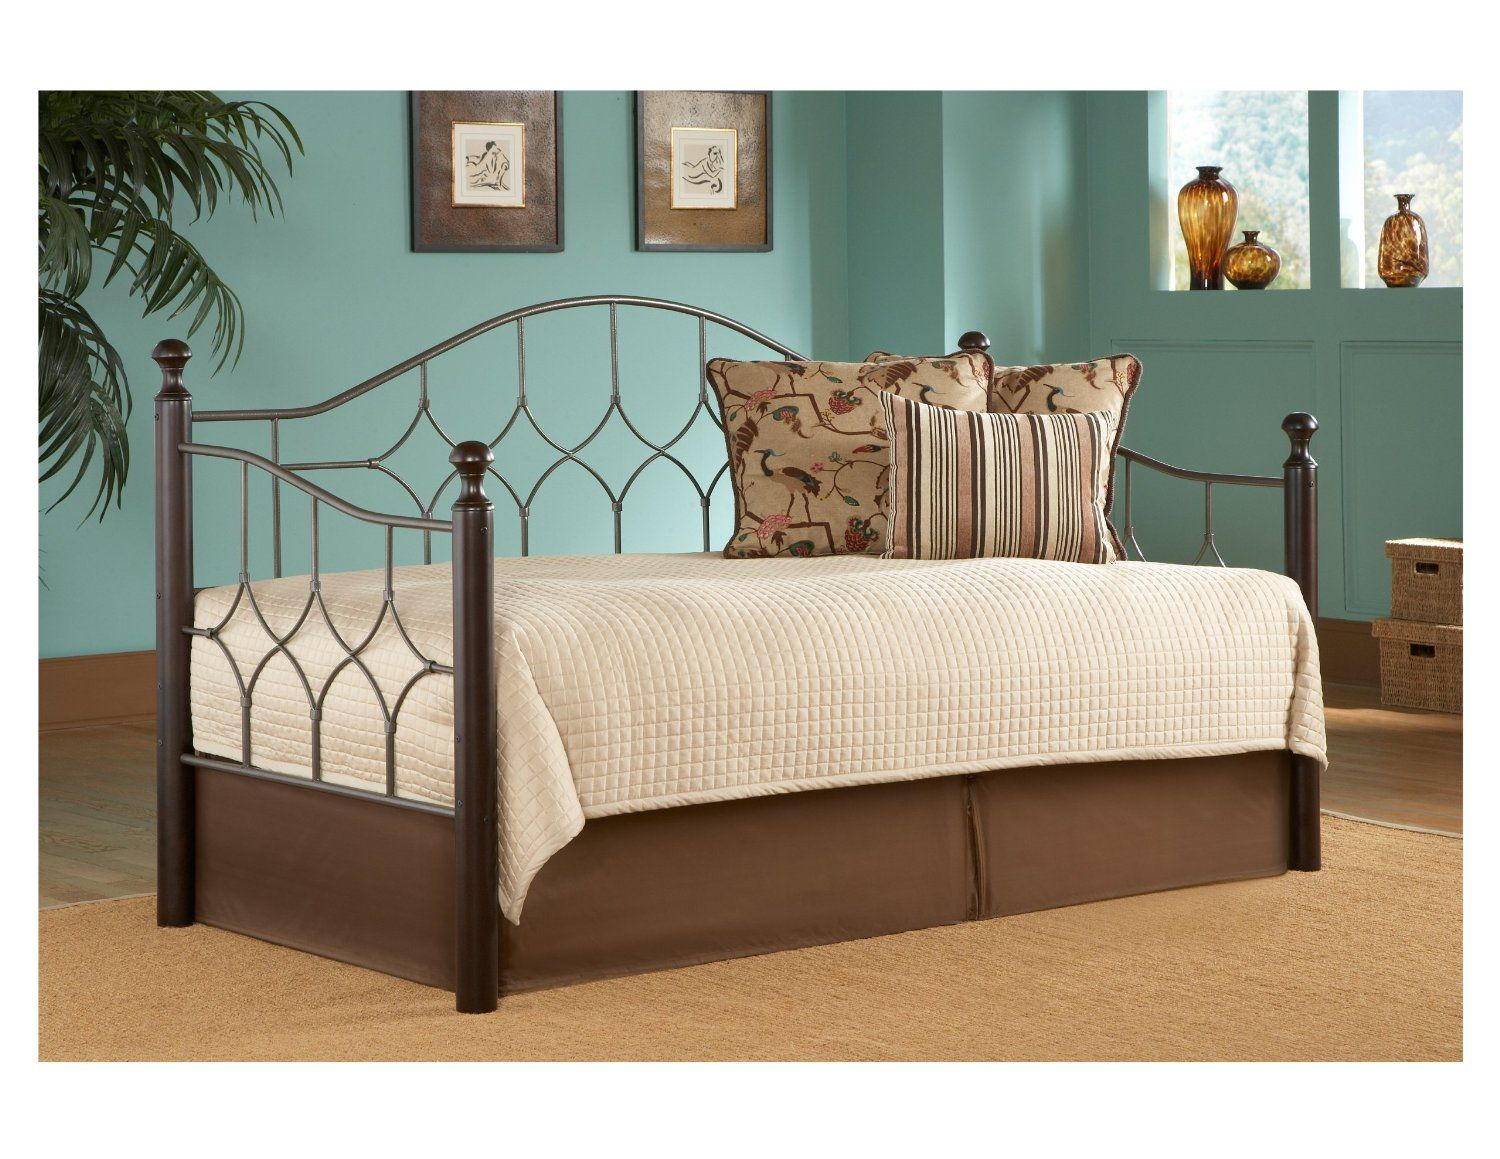 Bedroom, : Classy Light Blue Wall Painting Interior Design With Ikea Black Daybed For Decorating Bedroom Ideas Also White Sheet Black Iron Day Bed Also Brown Wooden Side Table With Brown Furry Rug